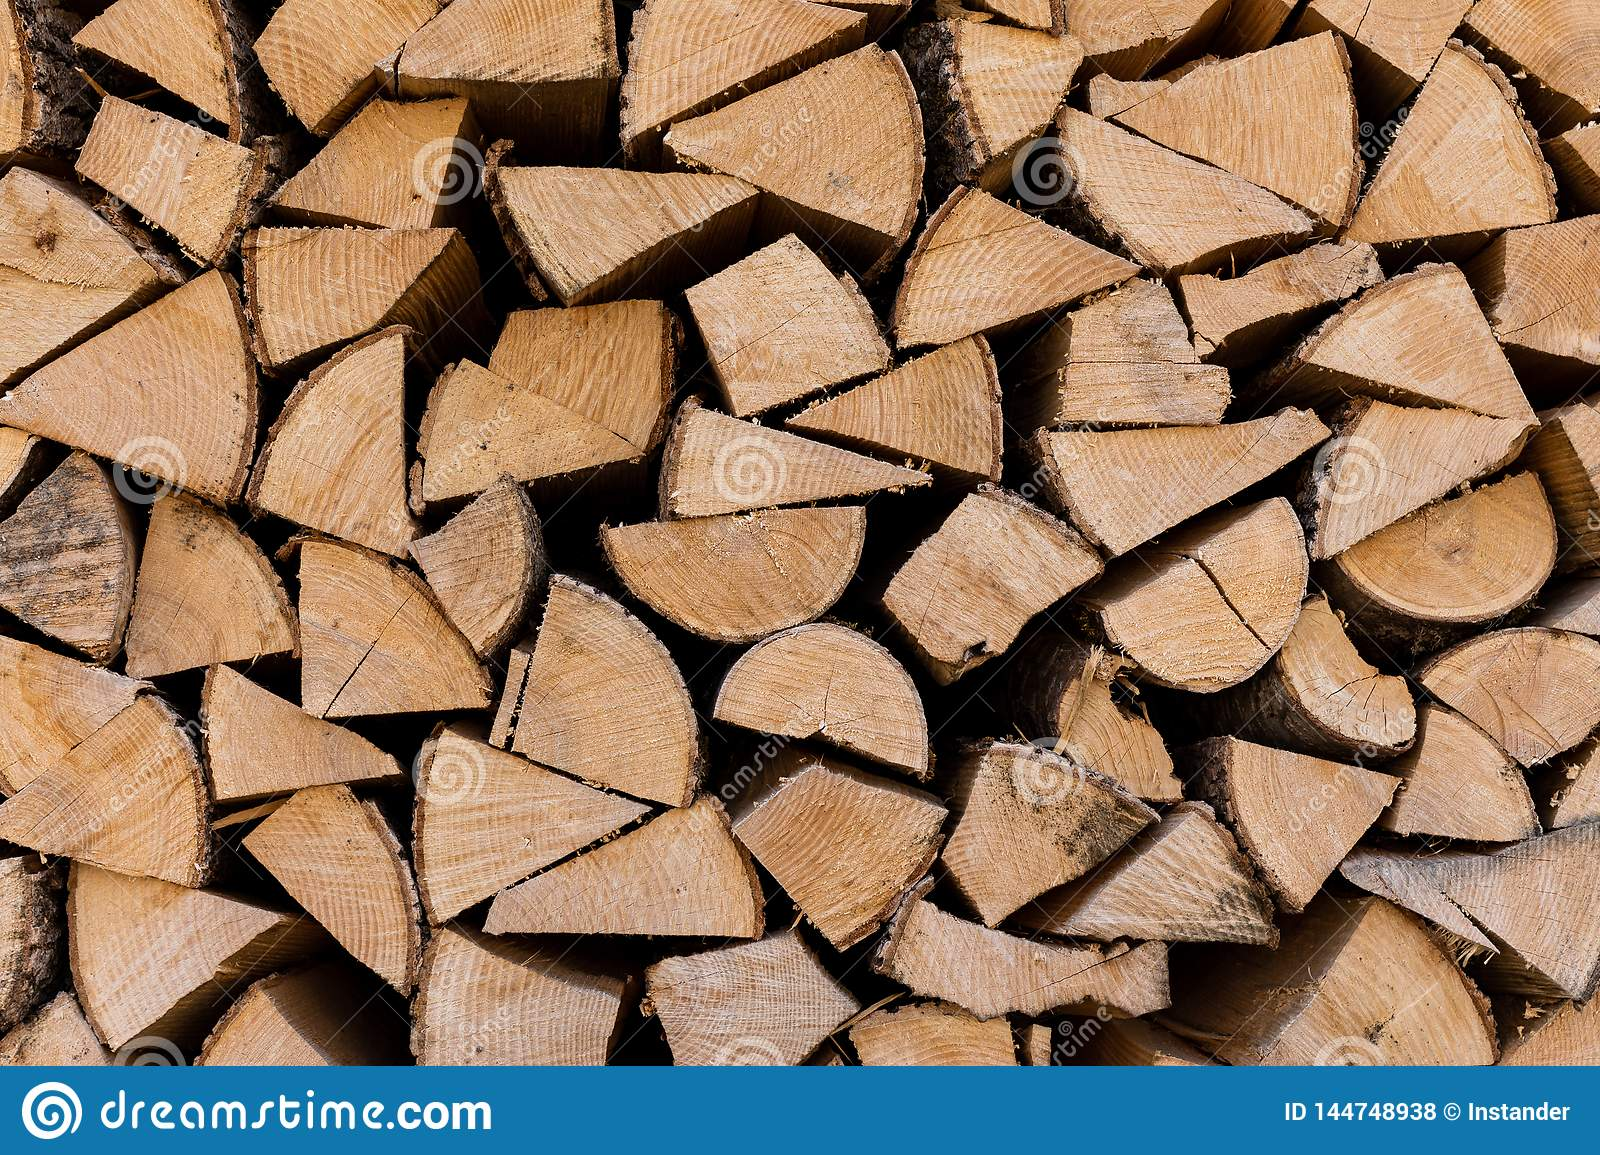 Kirchberg in Tirol, Tirol/Austria - March 24 2019: Wood stacked and waiting to be used for the fire place inside